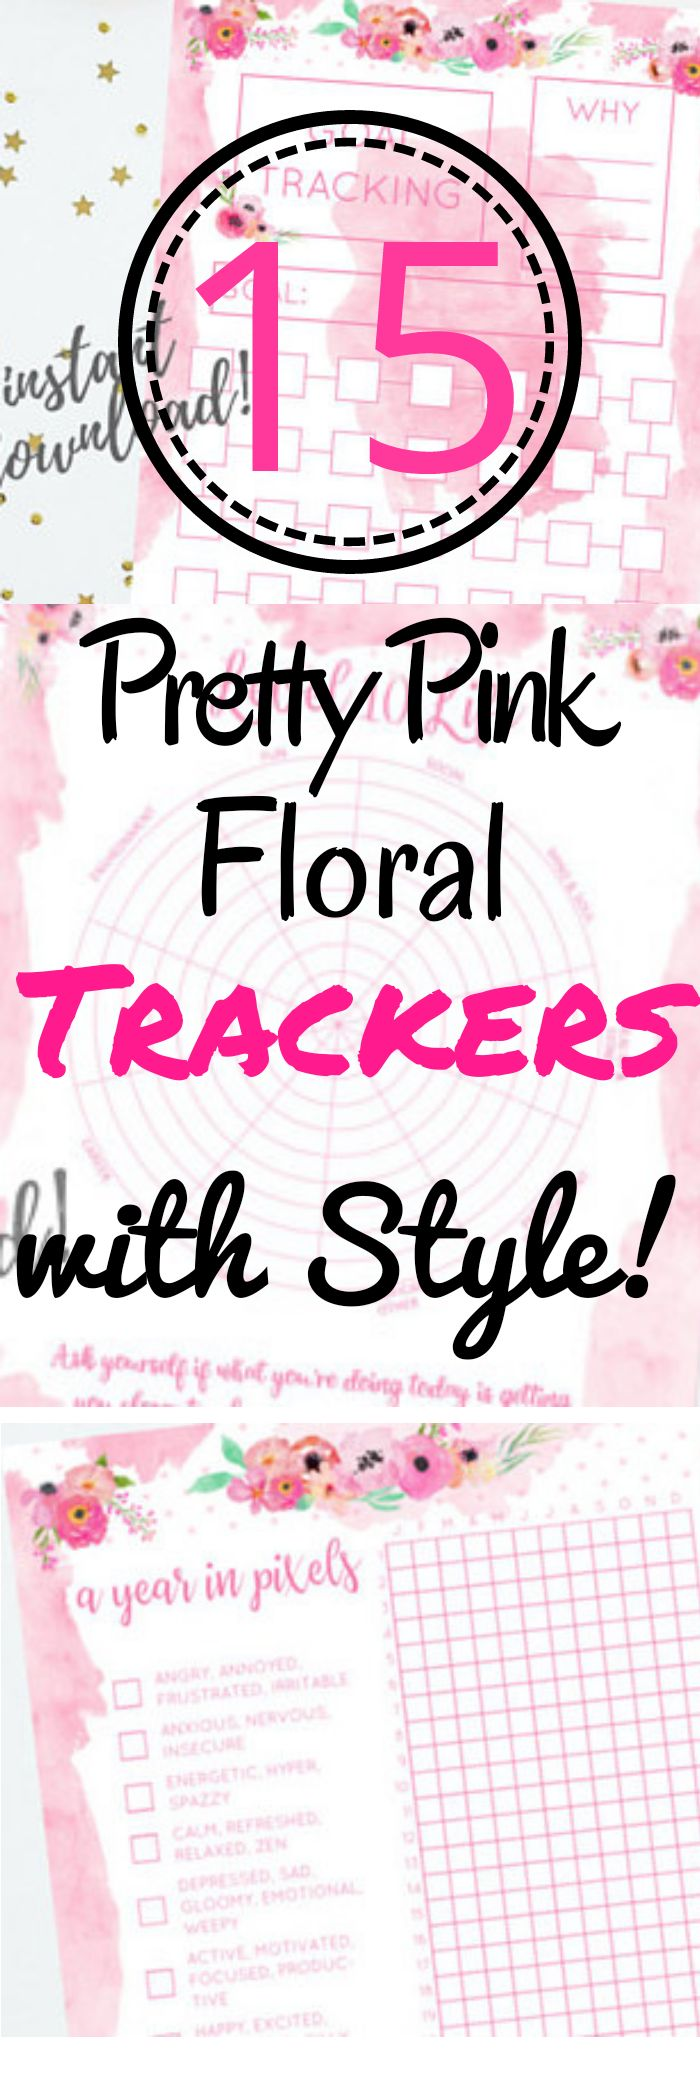 Looking for ways to track habits in your journal? Check out these pretty pink floral printable trackers to master your habits with style! Level 10 life tracker, mood tracker, year in pixels, lunar goals tracker, fail and hourly tracker #habittrackers #trackers #bulletjournals #ad #printable #planner #template #layouts #etsy #printables